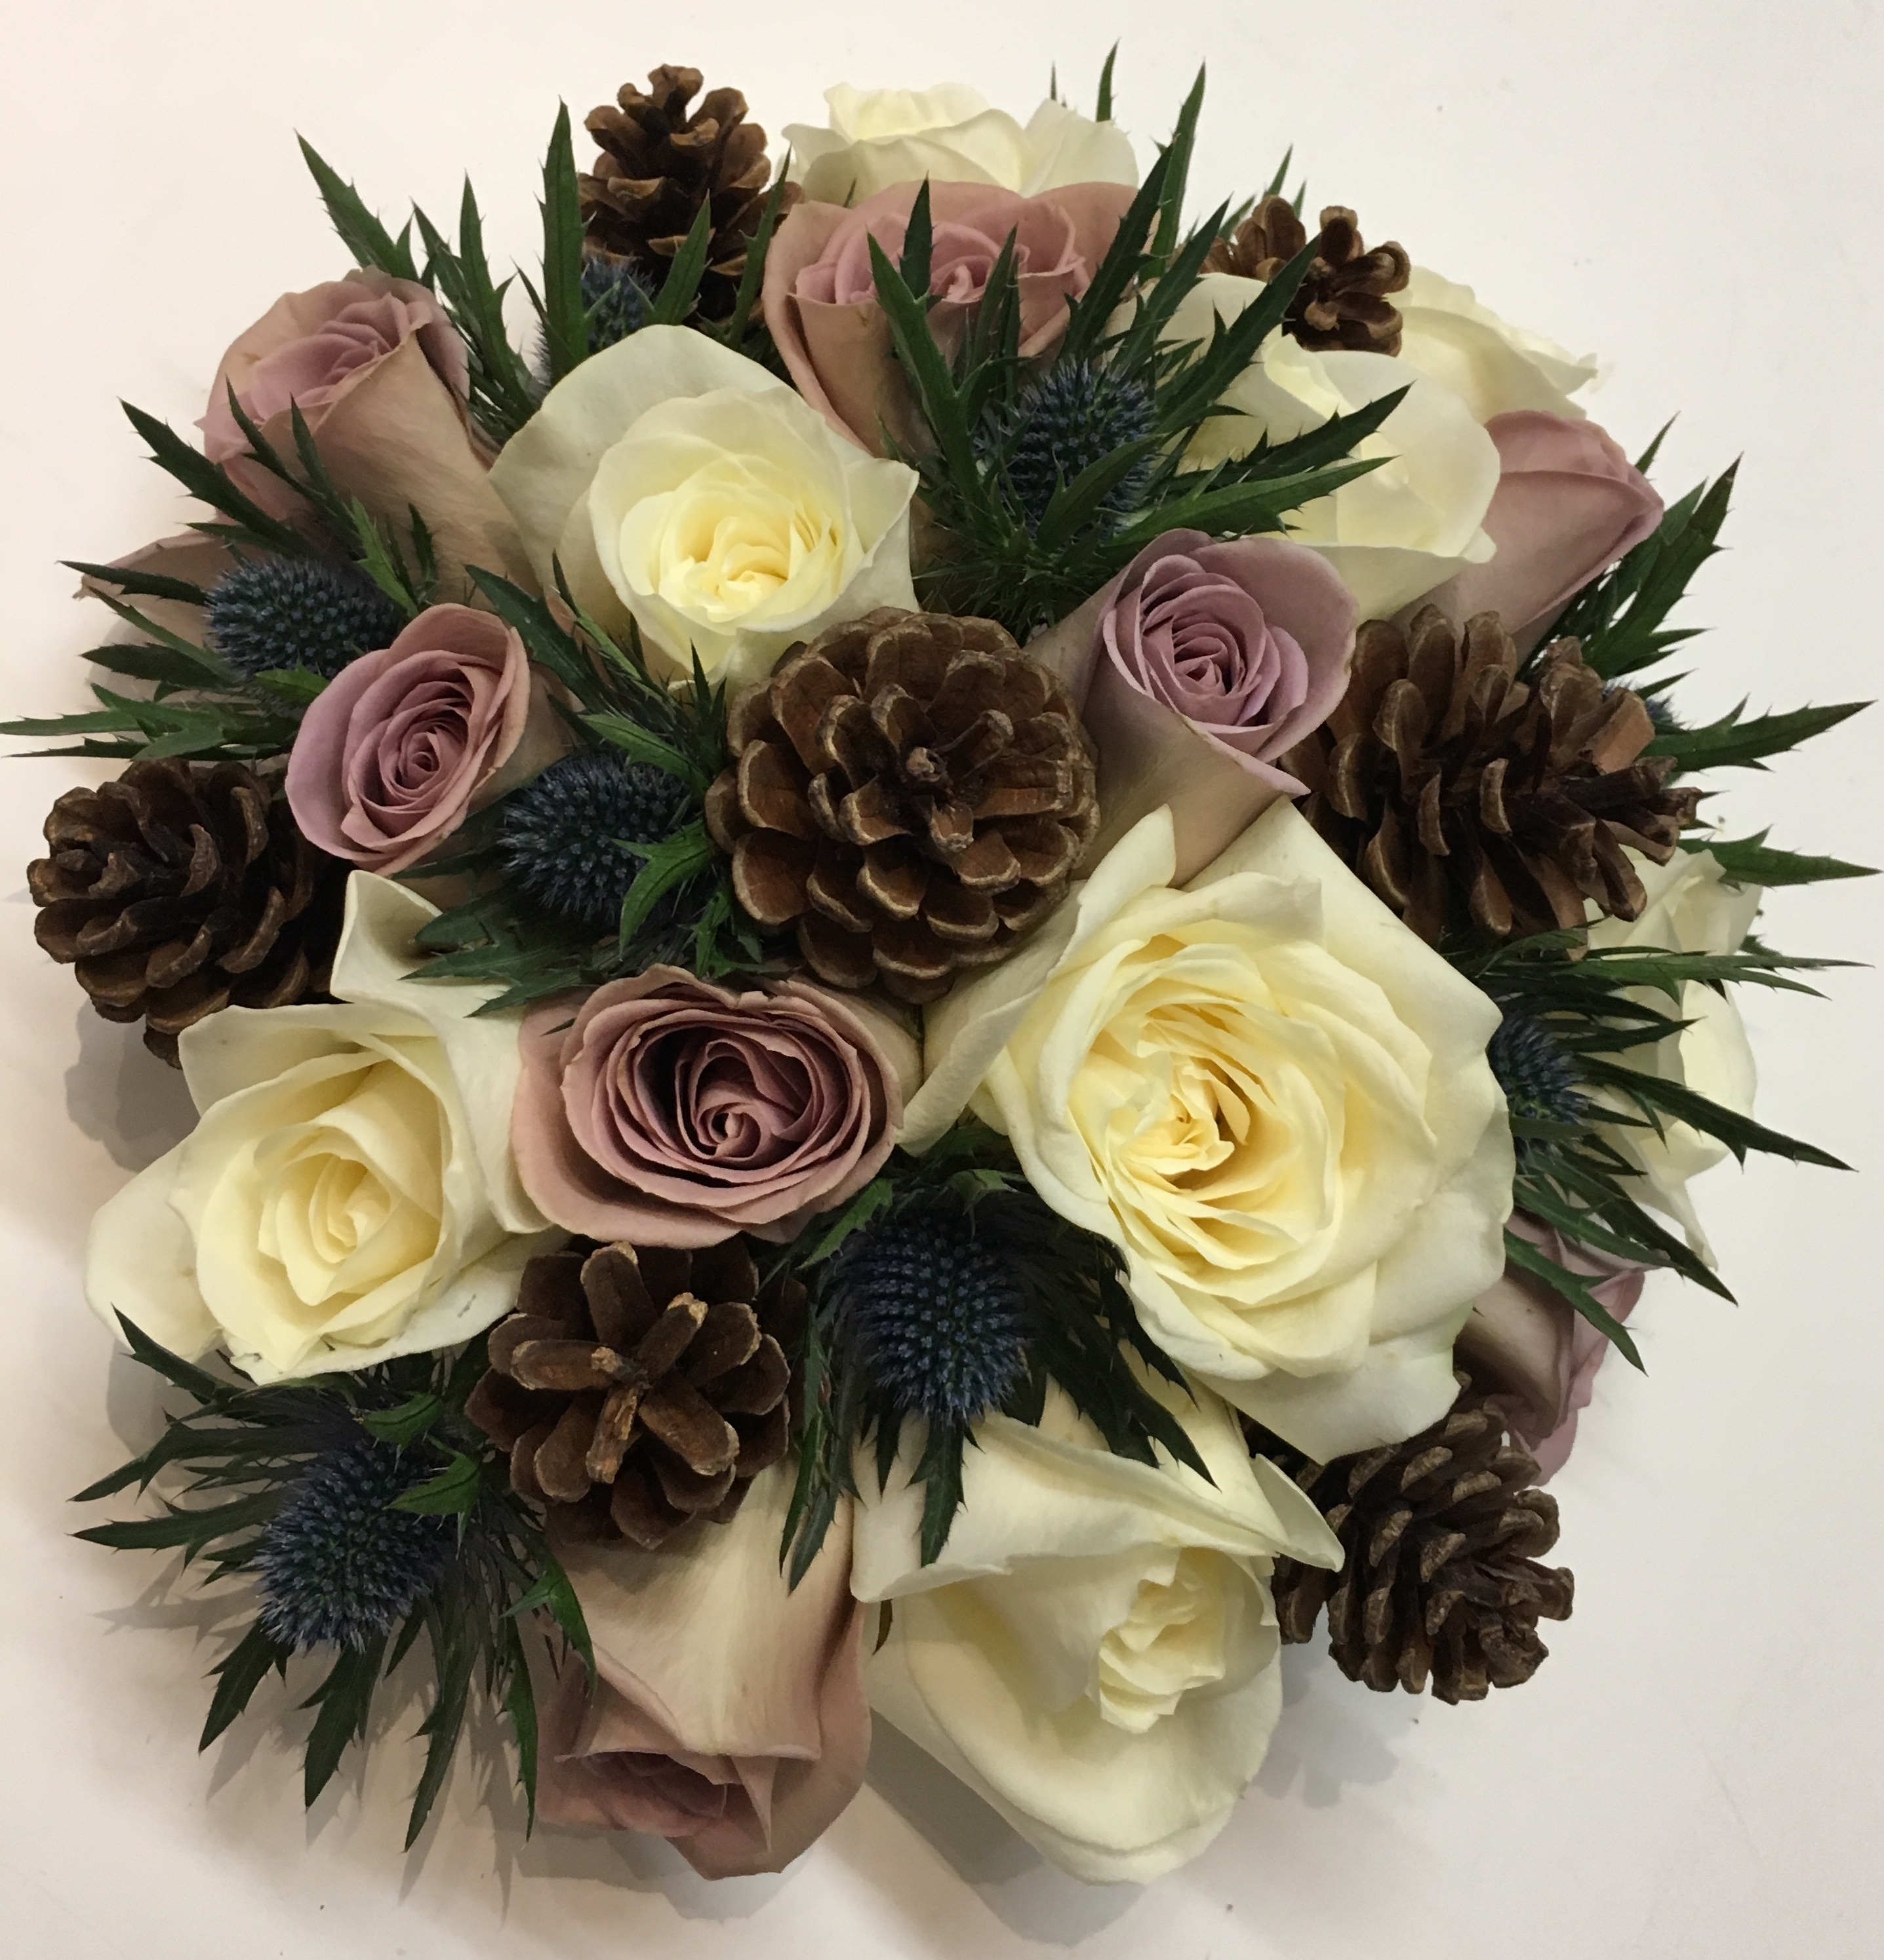 cone thistle and roses in a rustic style wedding flowers